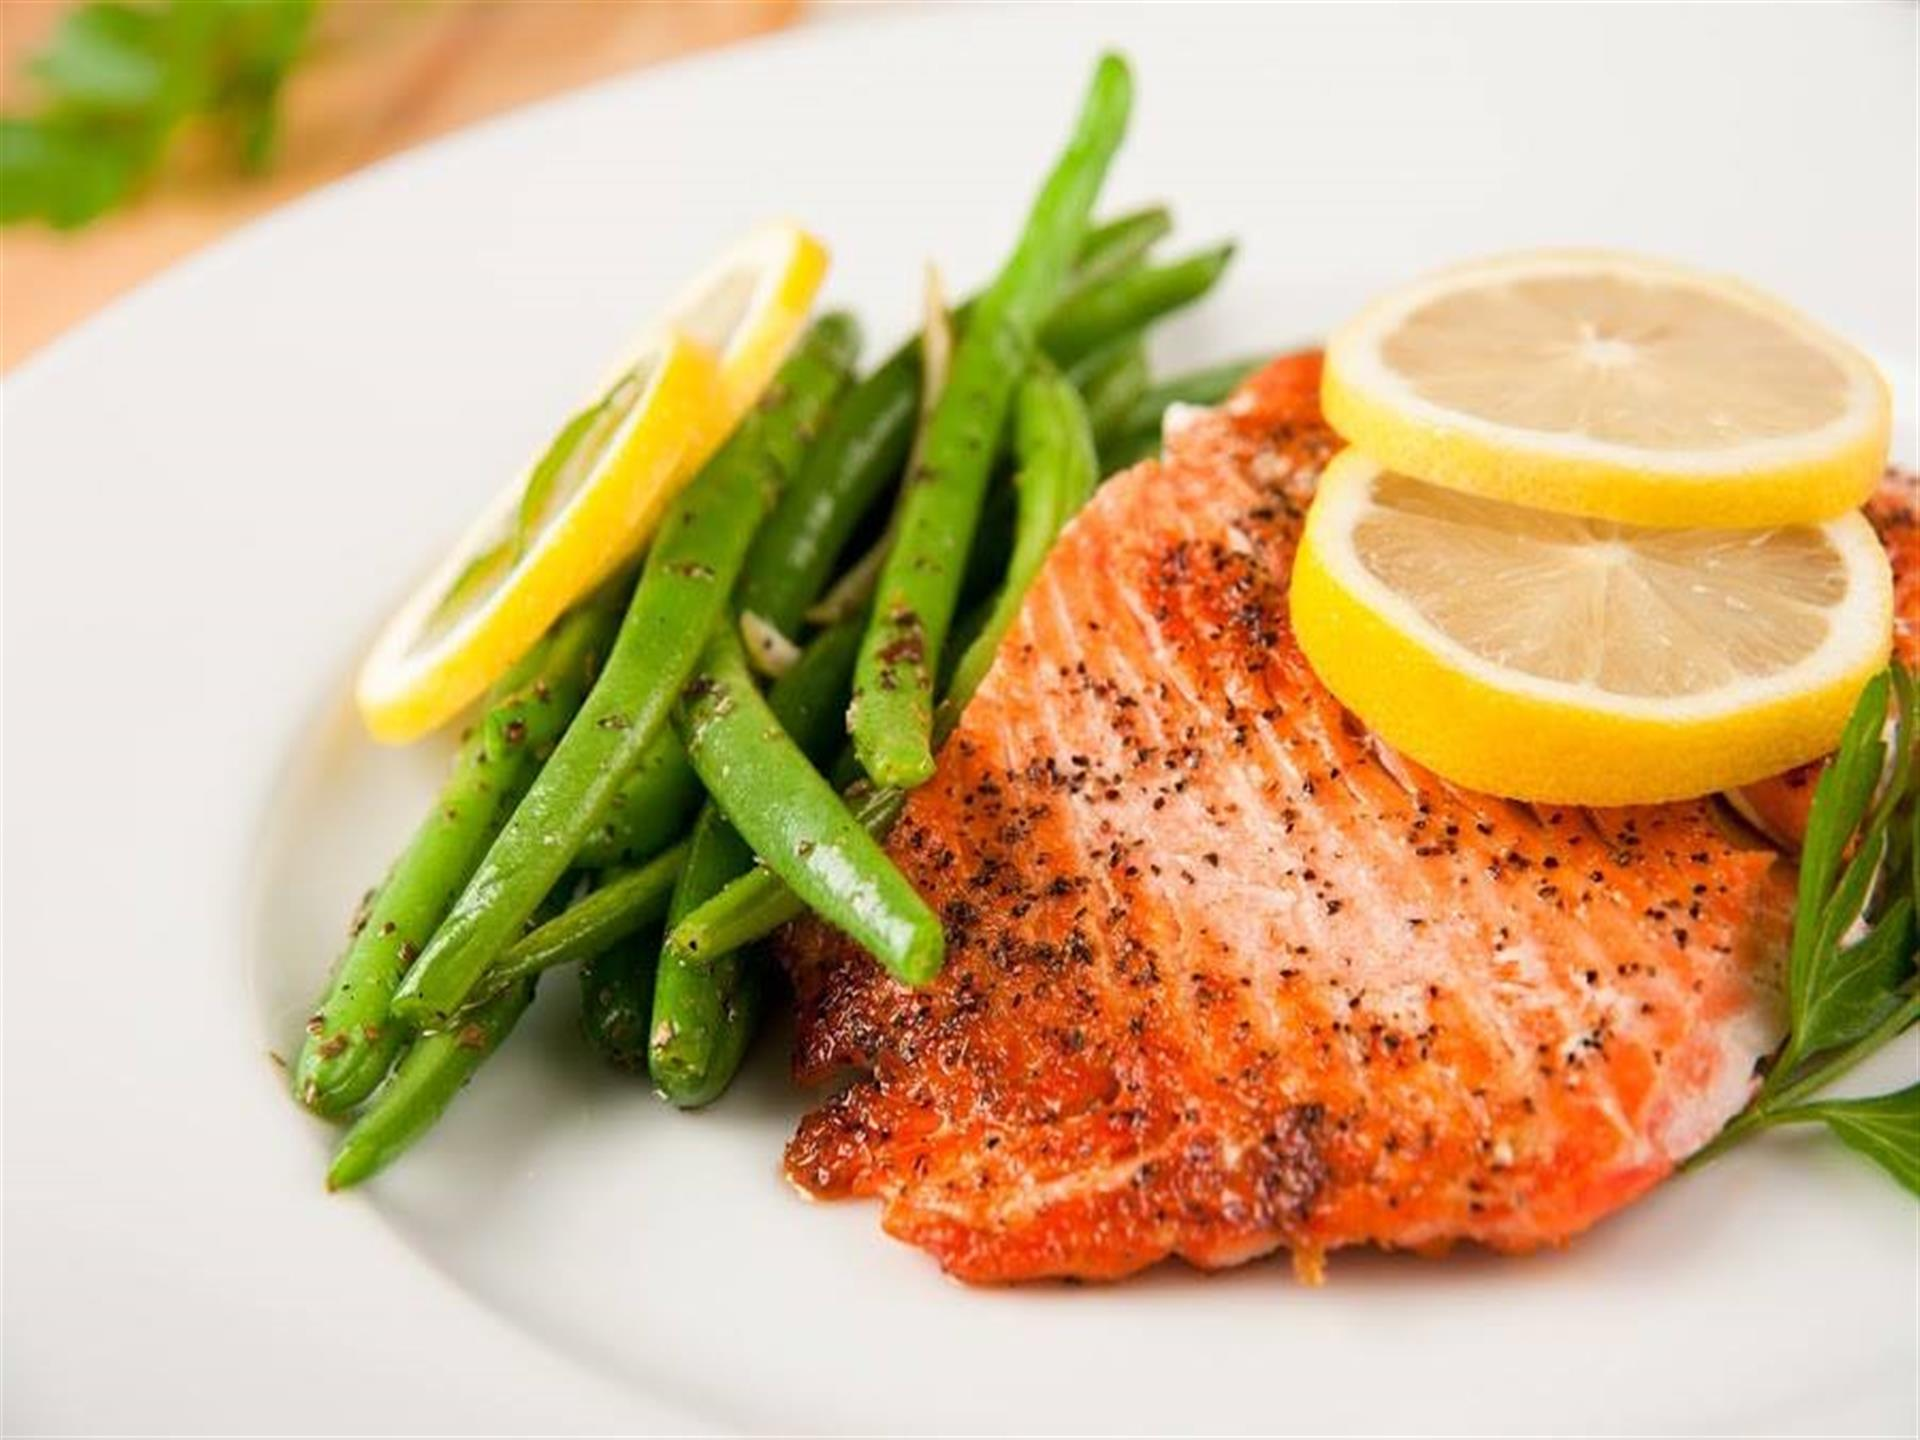 Salmon with Veggies